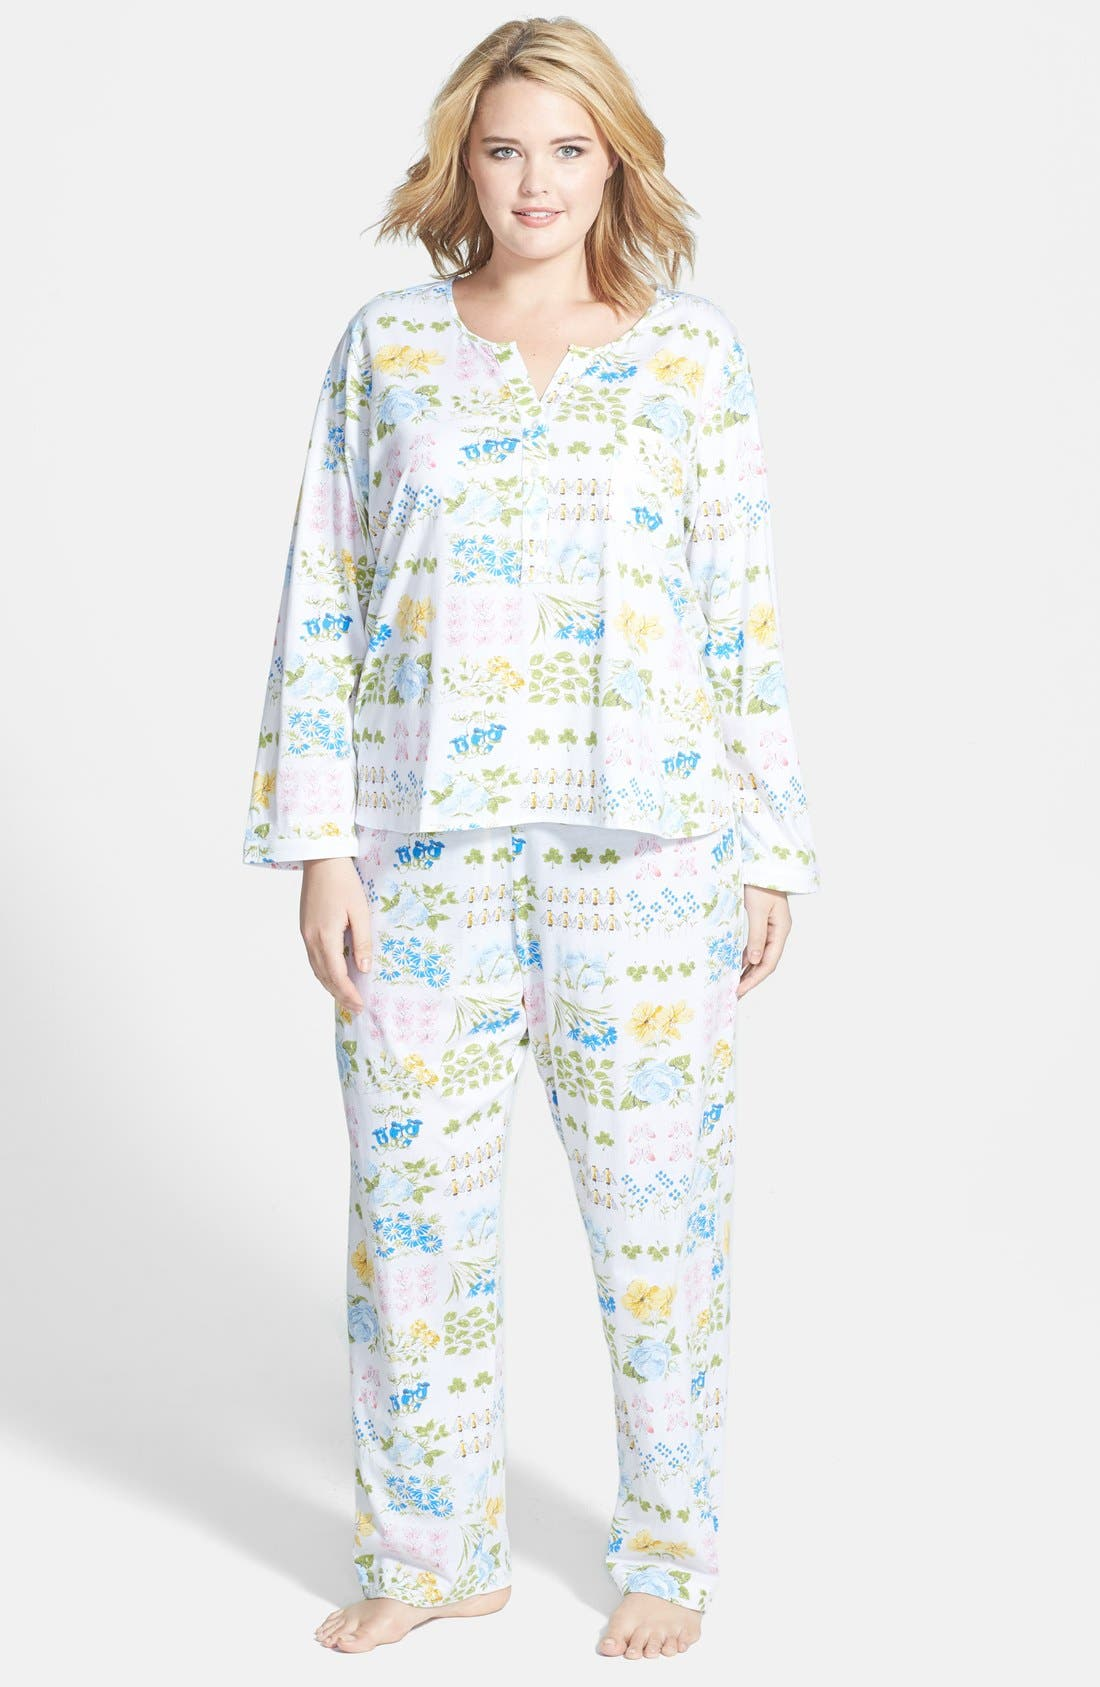 Alternate Image 1 Selected - Carole Hochman Designs 'Butterfly Garden' Pajamas (Plus Size)